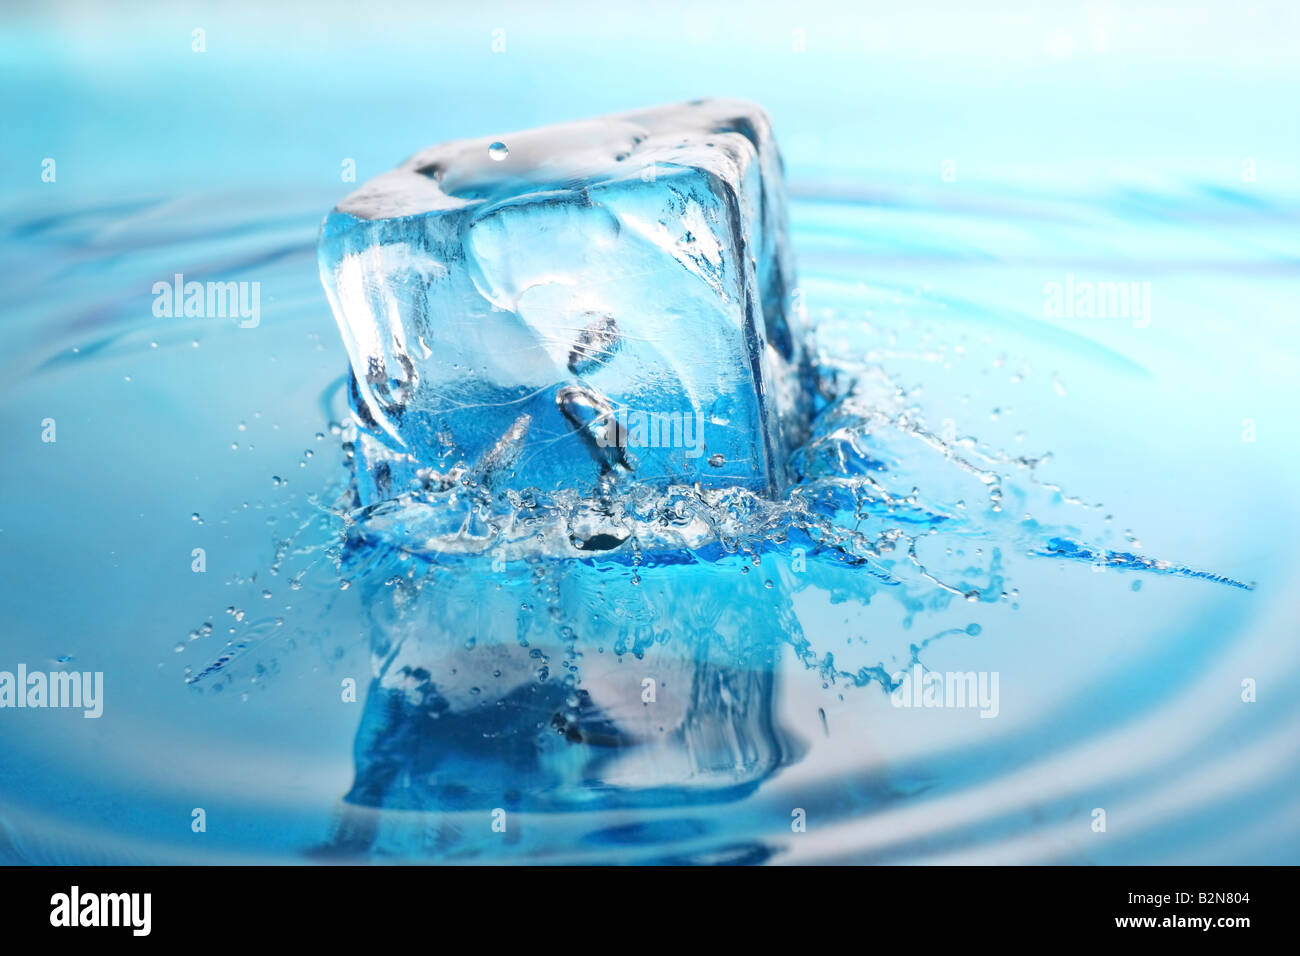 Cool refreshing ice cube dropped into freshly poured water for Refreshing pictures